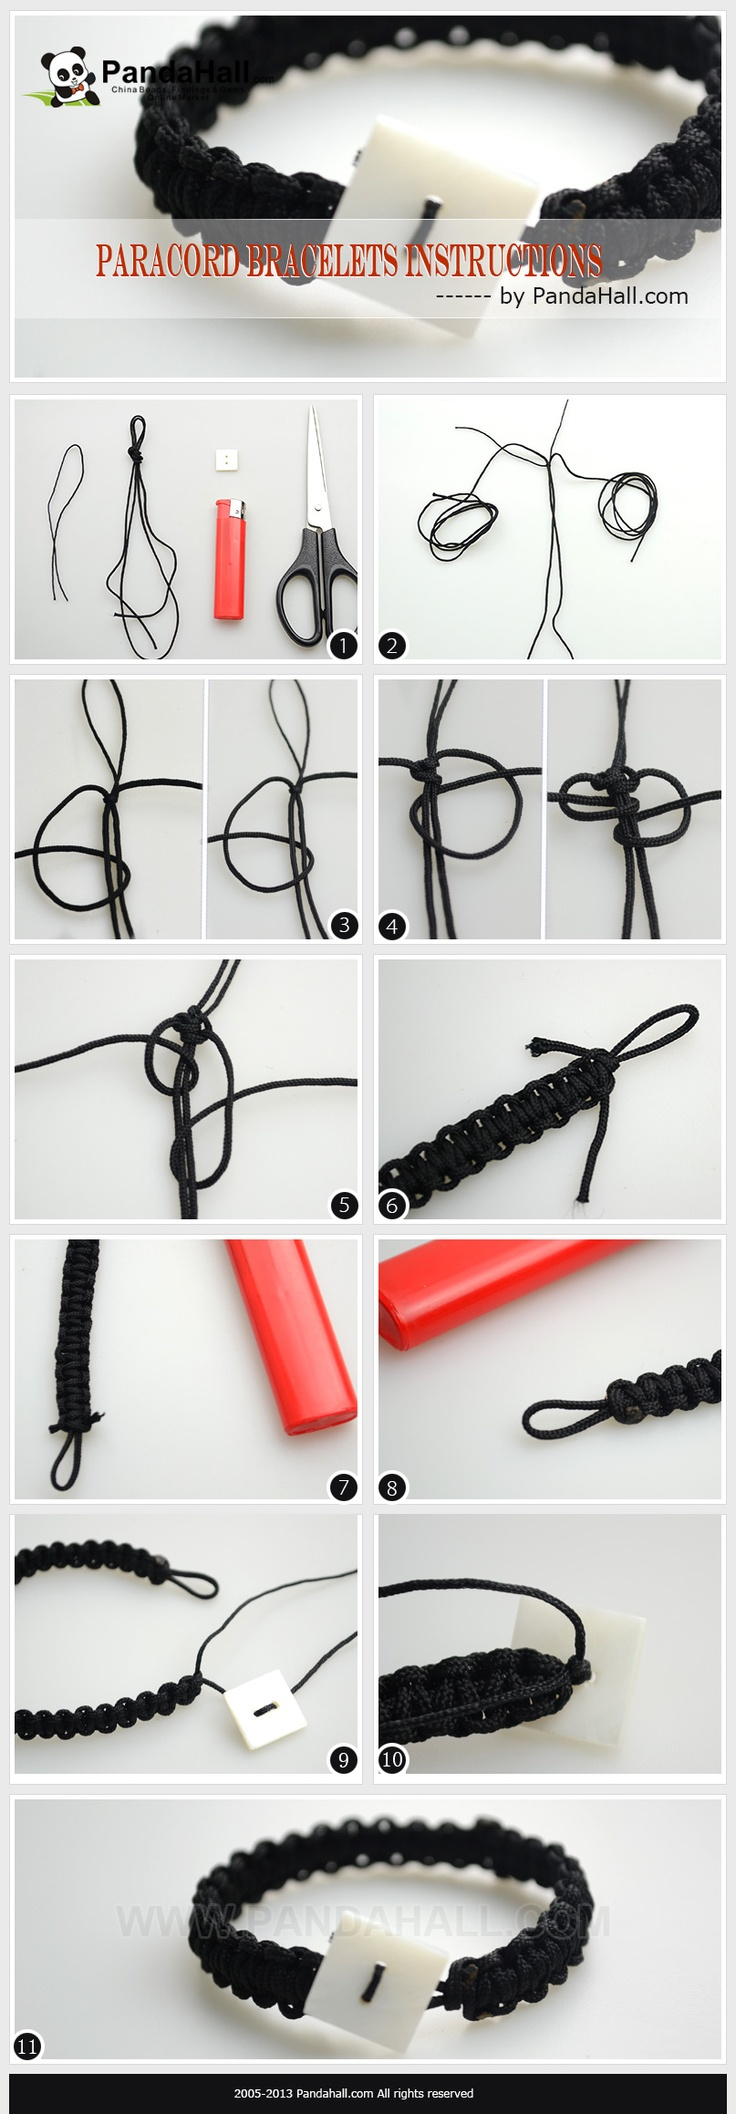 In this article, I will share you one sample of the professional Paracord bracelets instructions; and furthermore, the way to undo a real Paracord bracelet. All stuffs you'll need are a strand of Paracord and scissors!